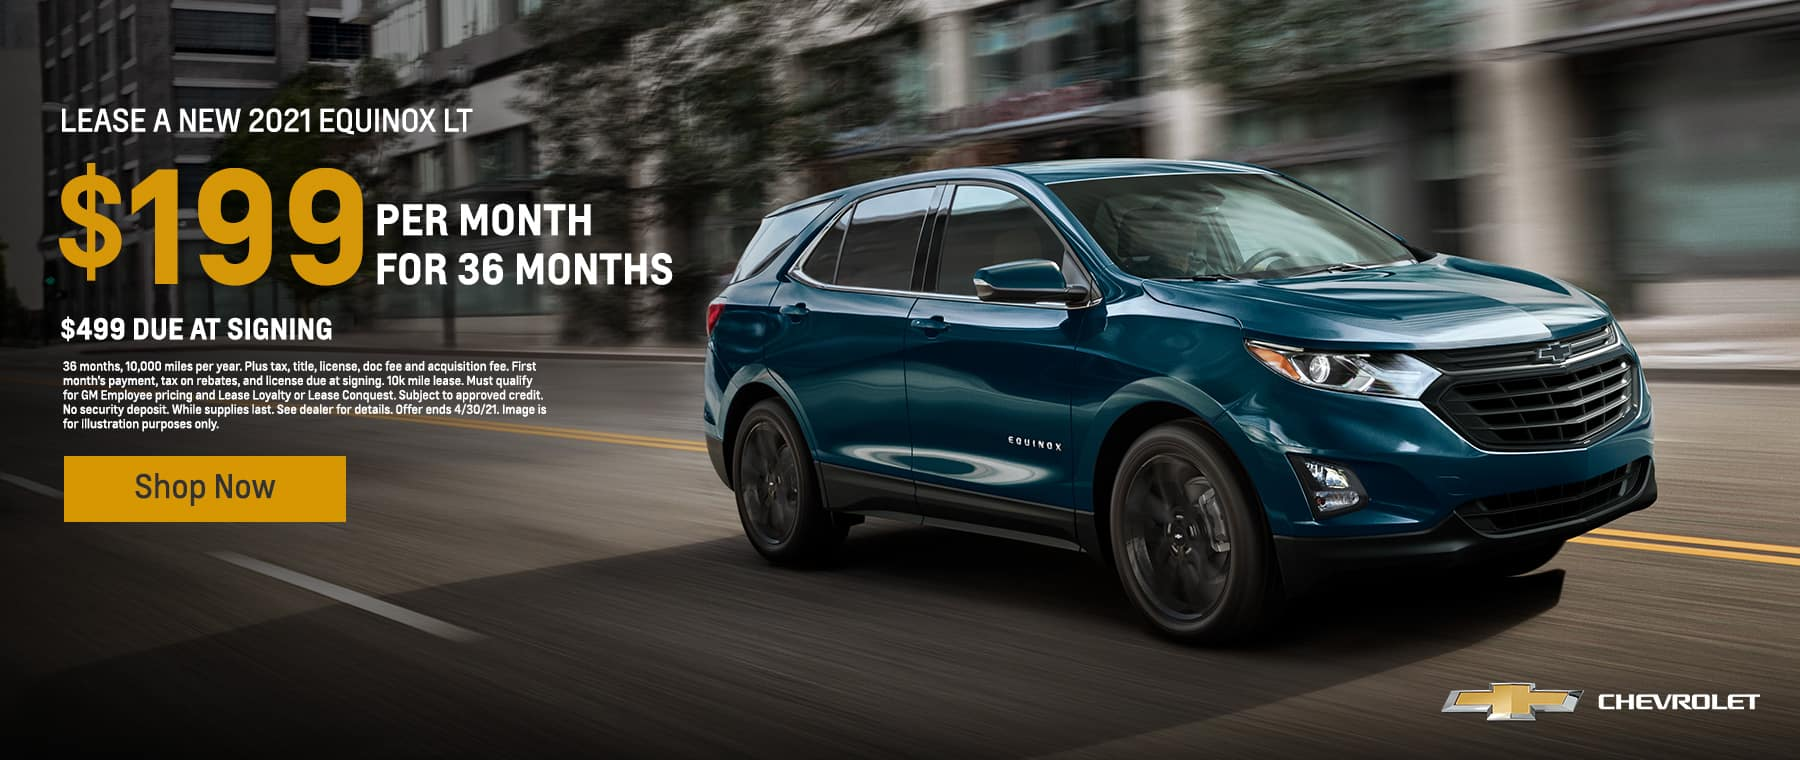 2021 Equinox LT, $199 with $499 due at signing